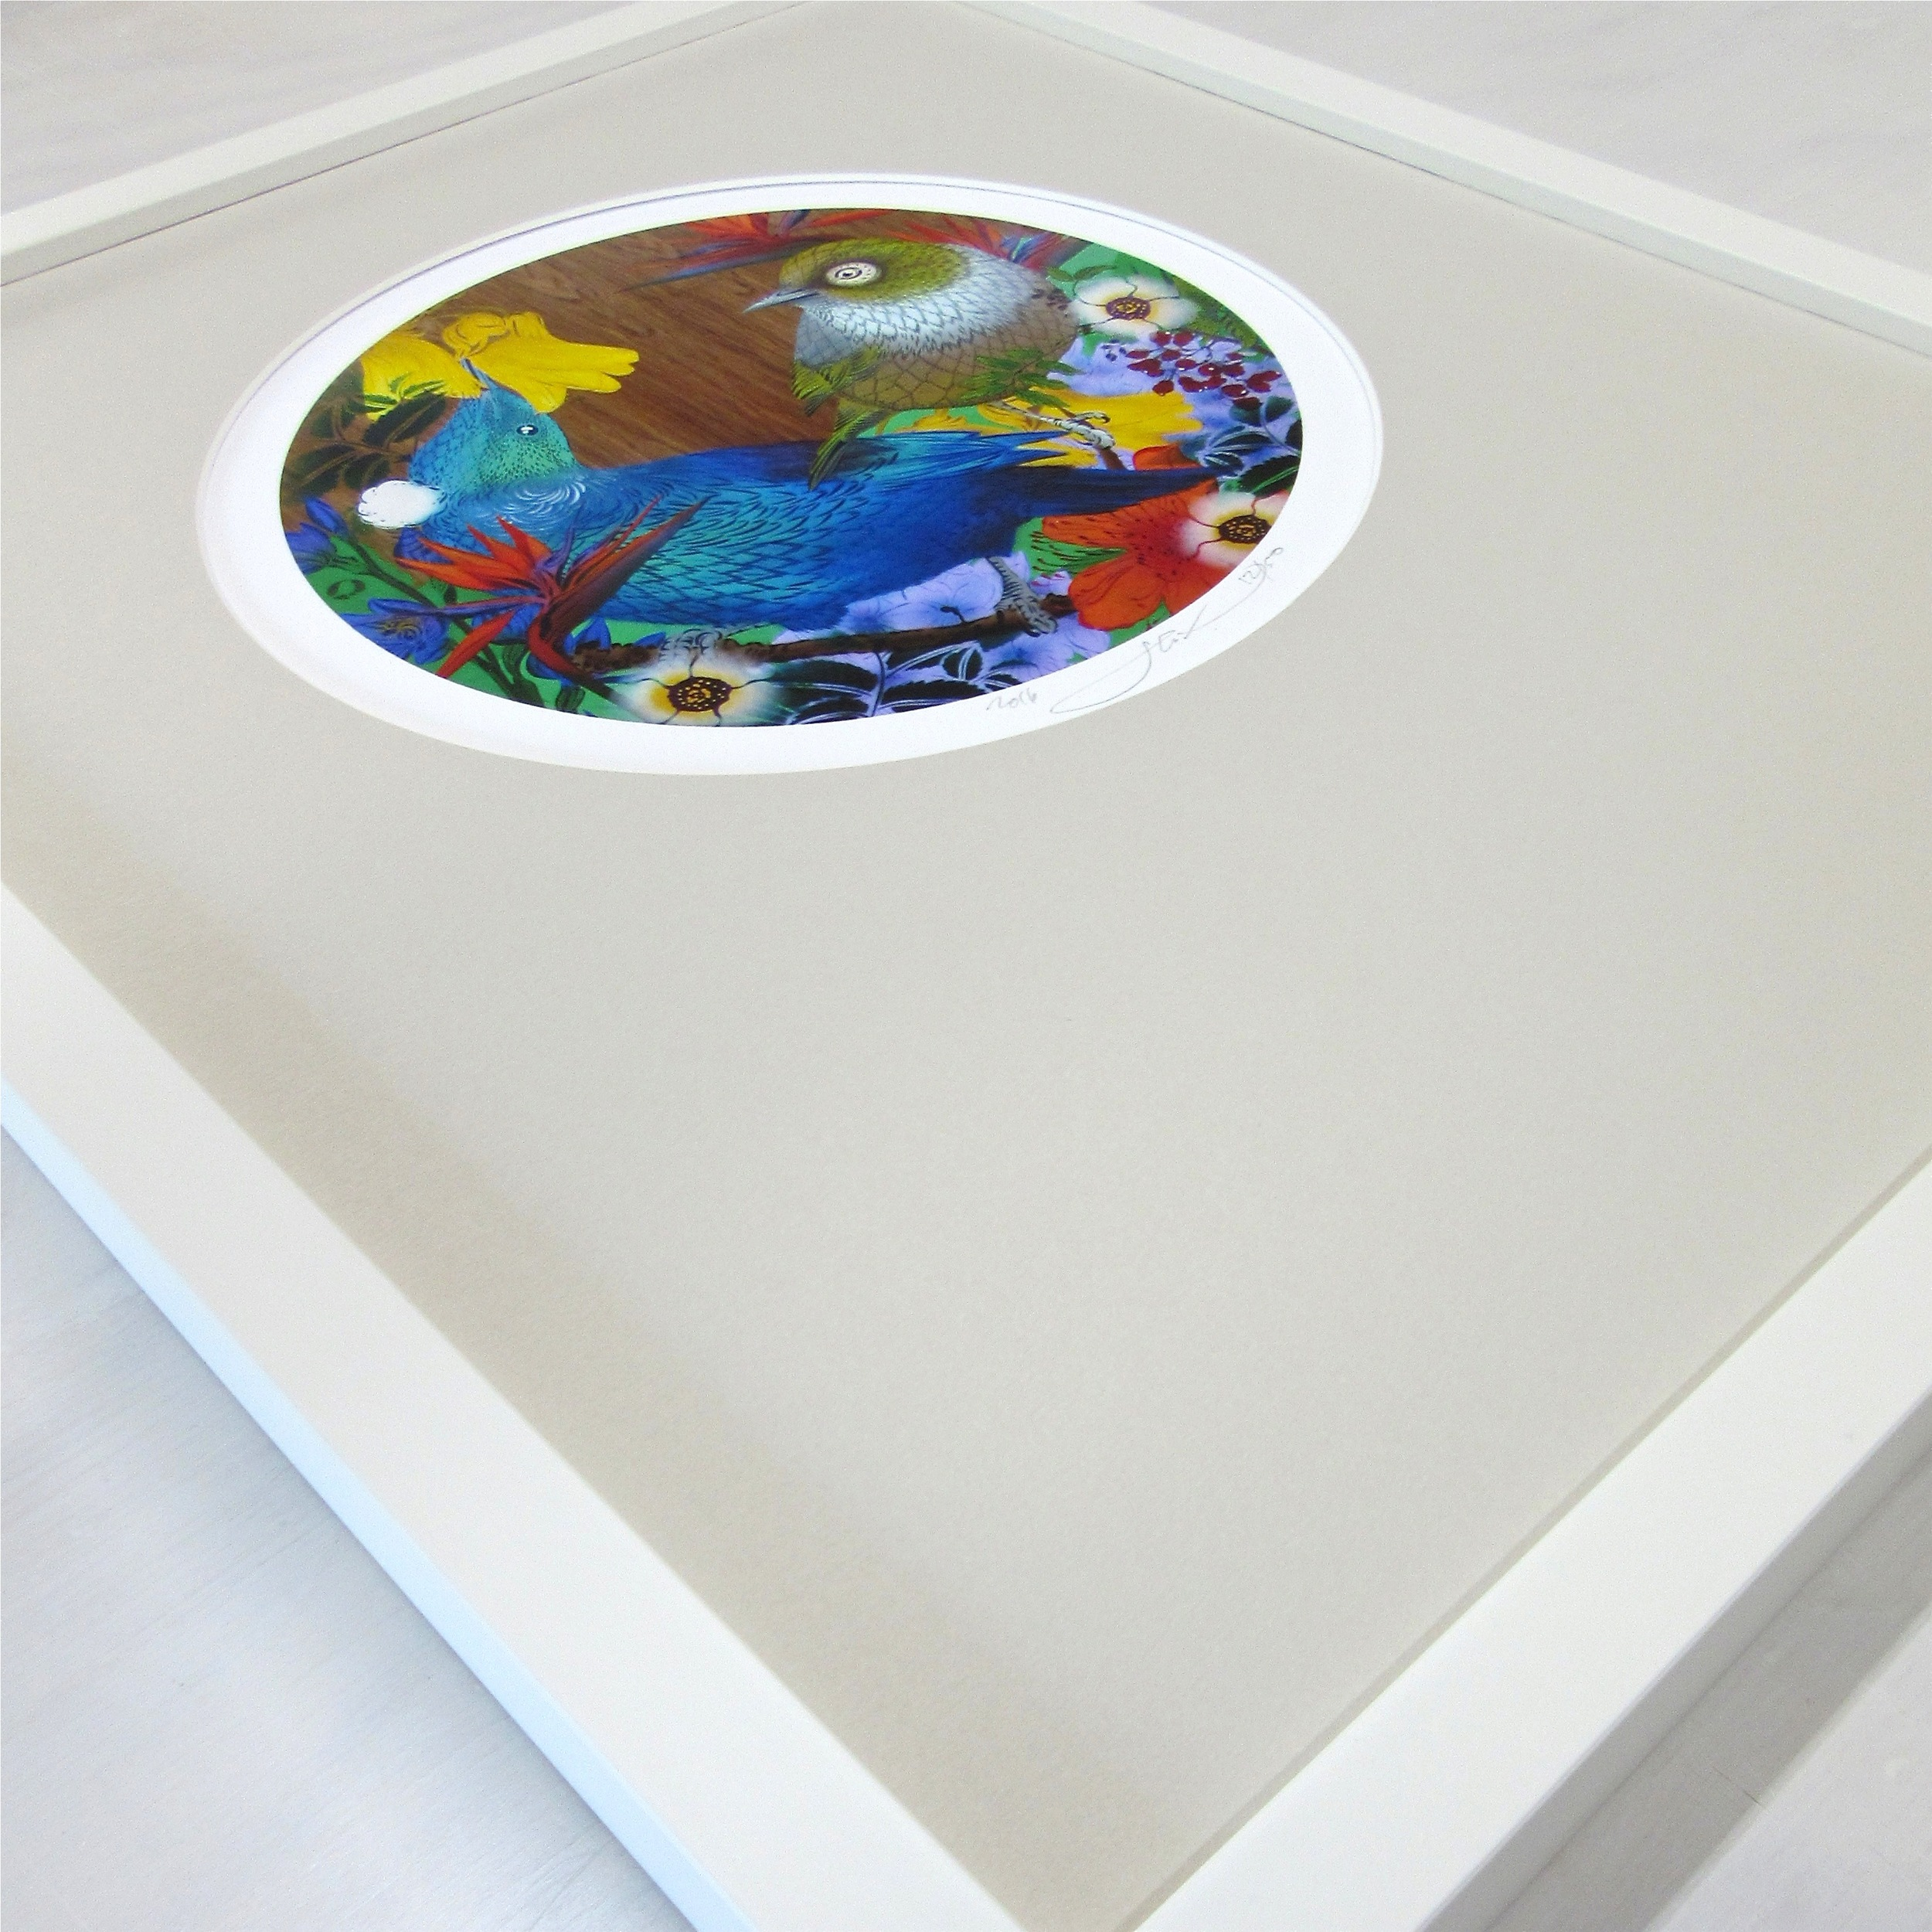 Circular mat for limited edition print by Flox